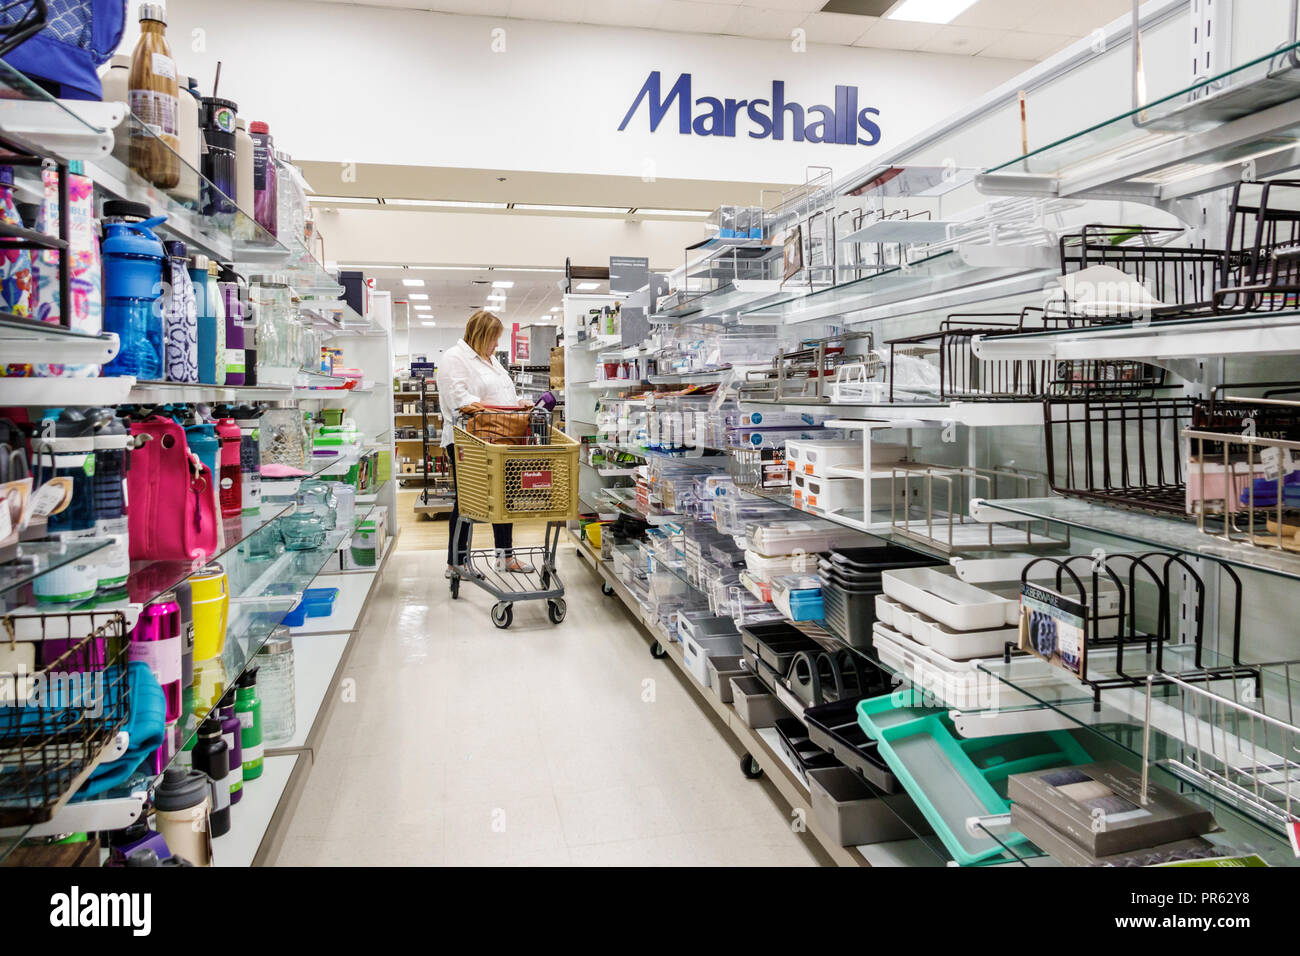 Miami Florida Kendall The Palms at Town & Country Mall Marshalls discount department store inside shopping display sale aisle cart trolley - Stock Image